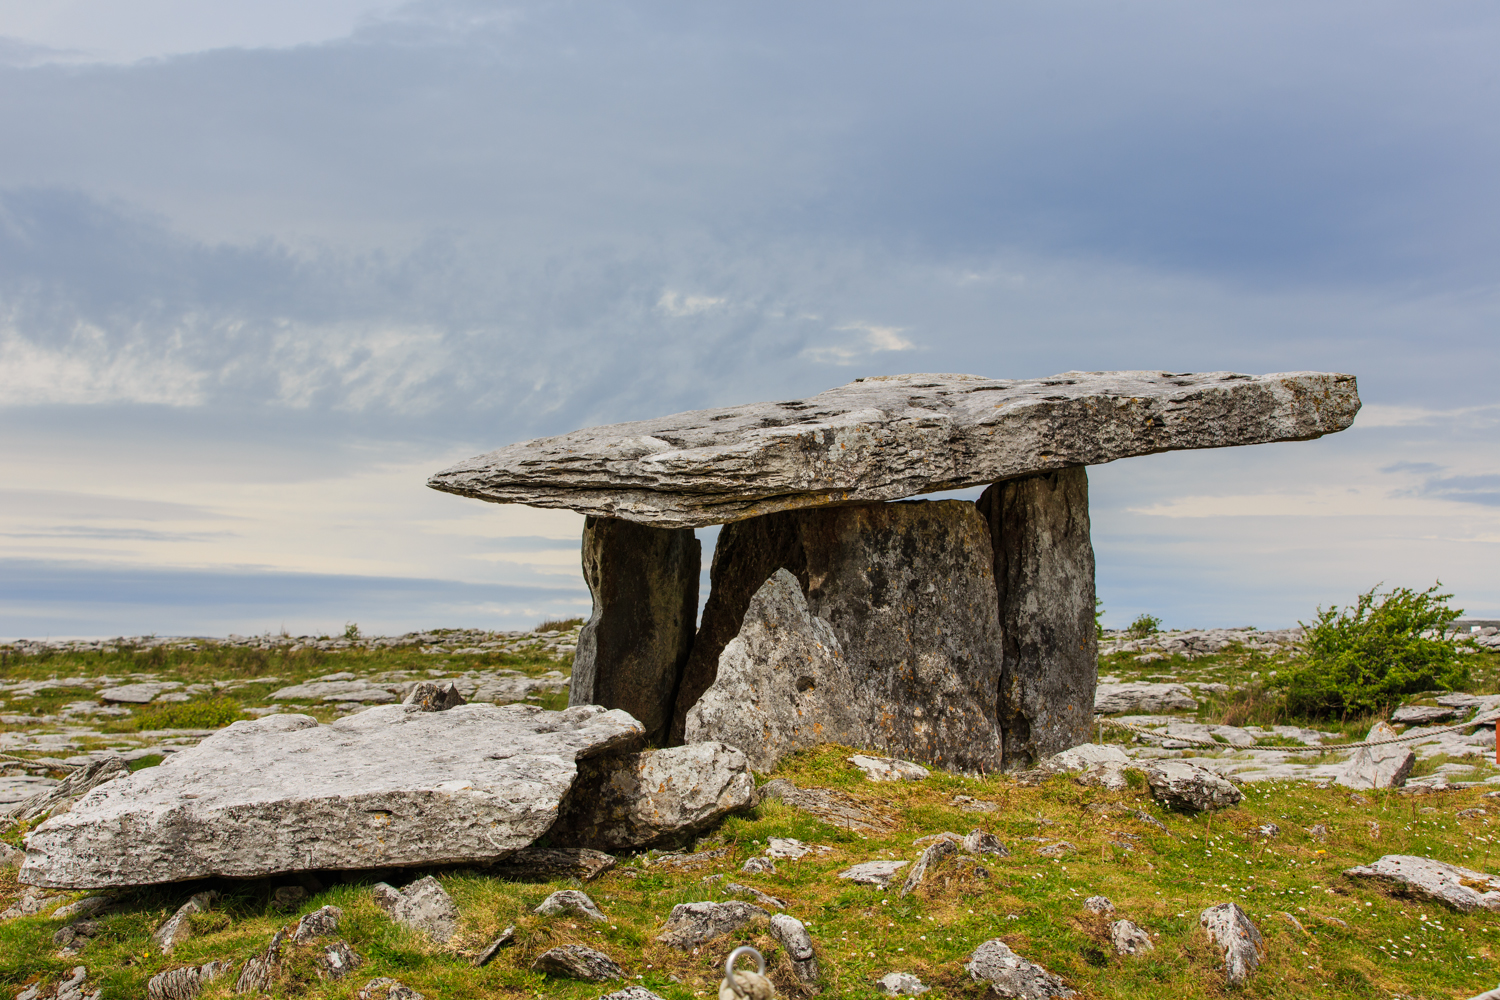 An ancient burial chamber from around 3000 BC.